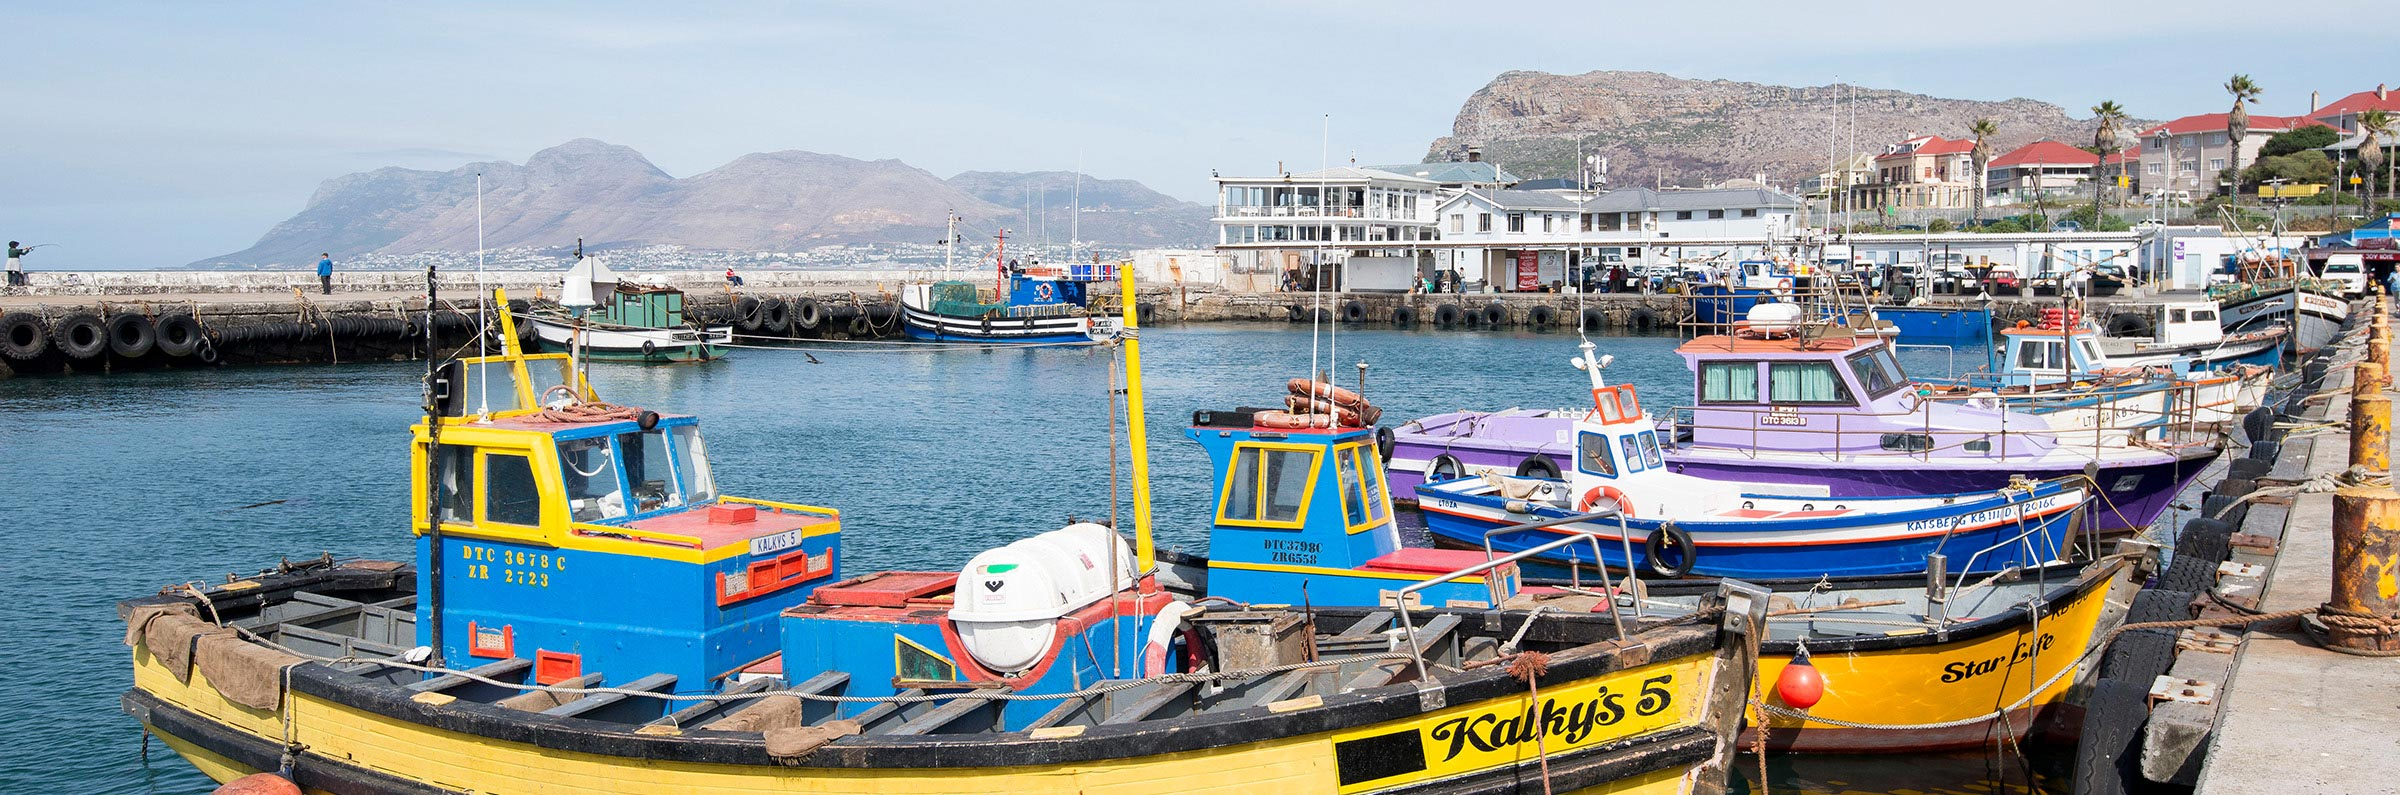 Sights and attractions in Cape Town